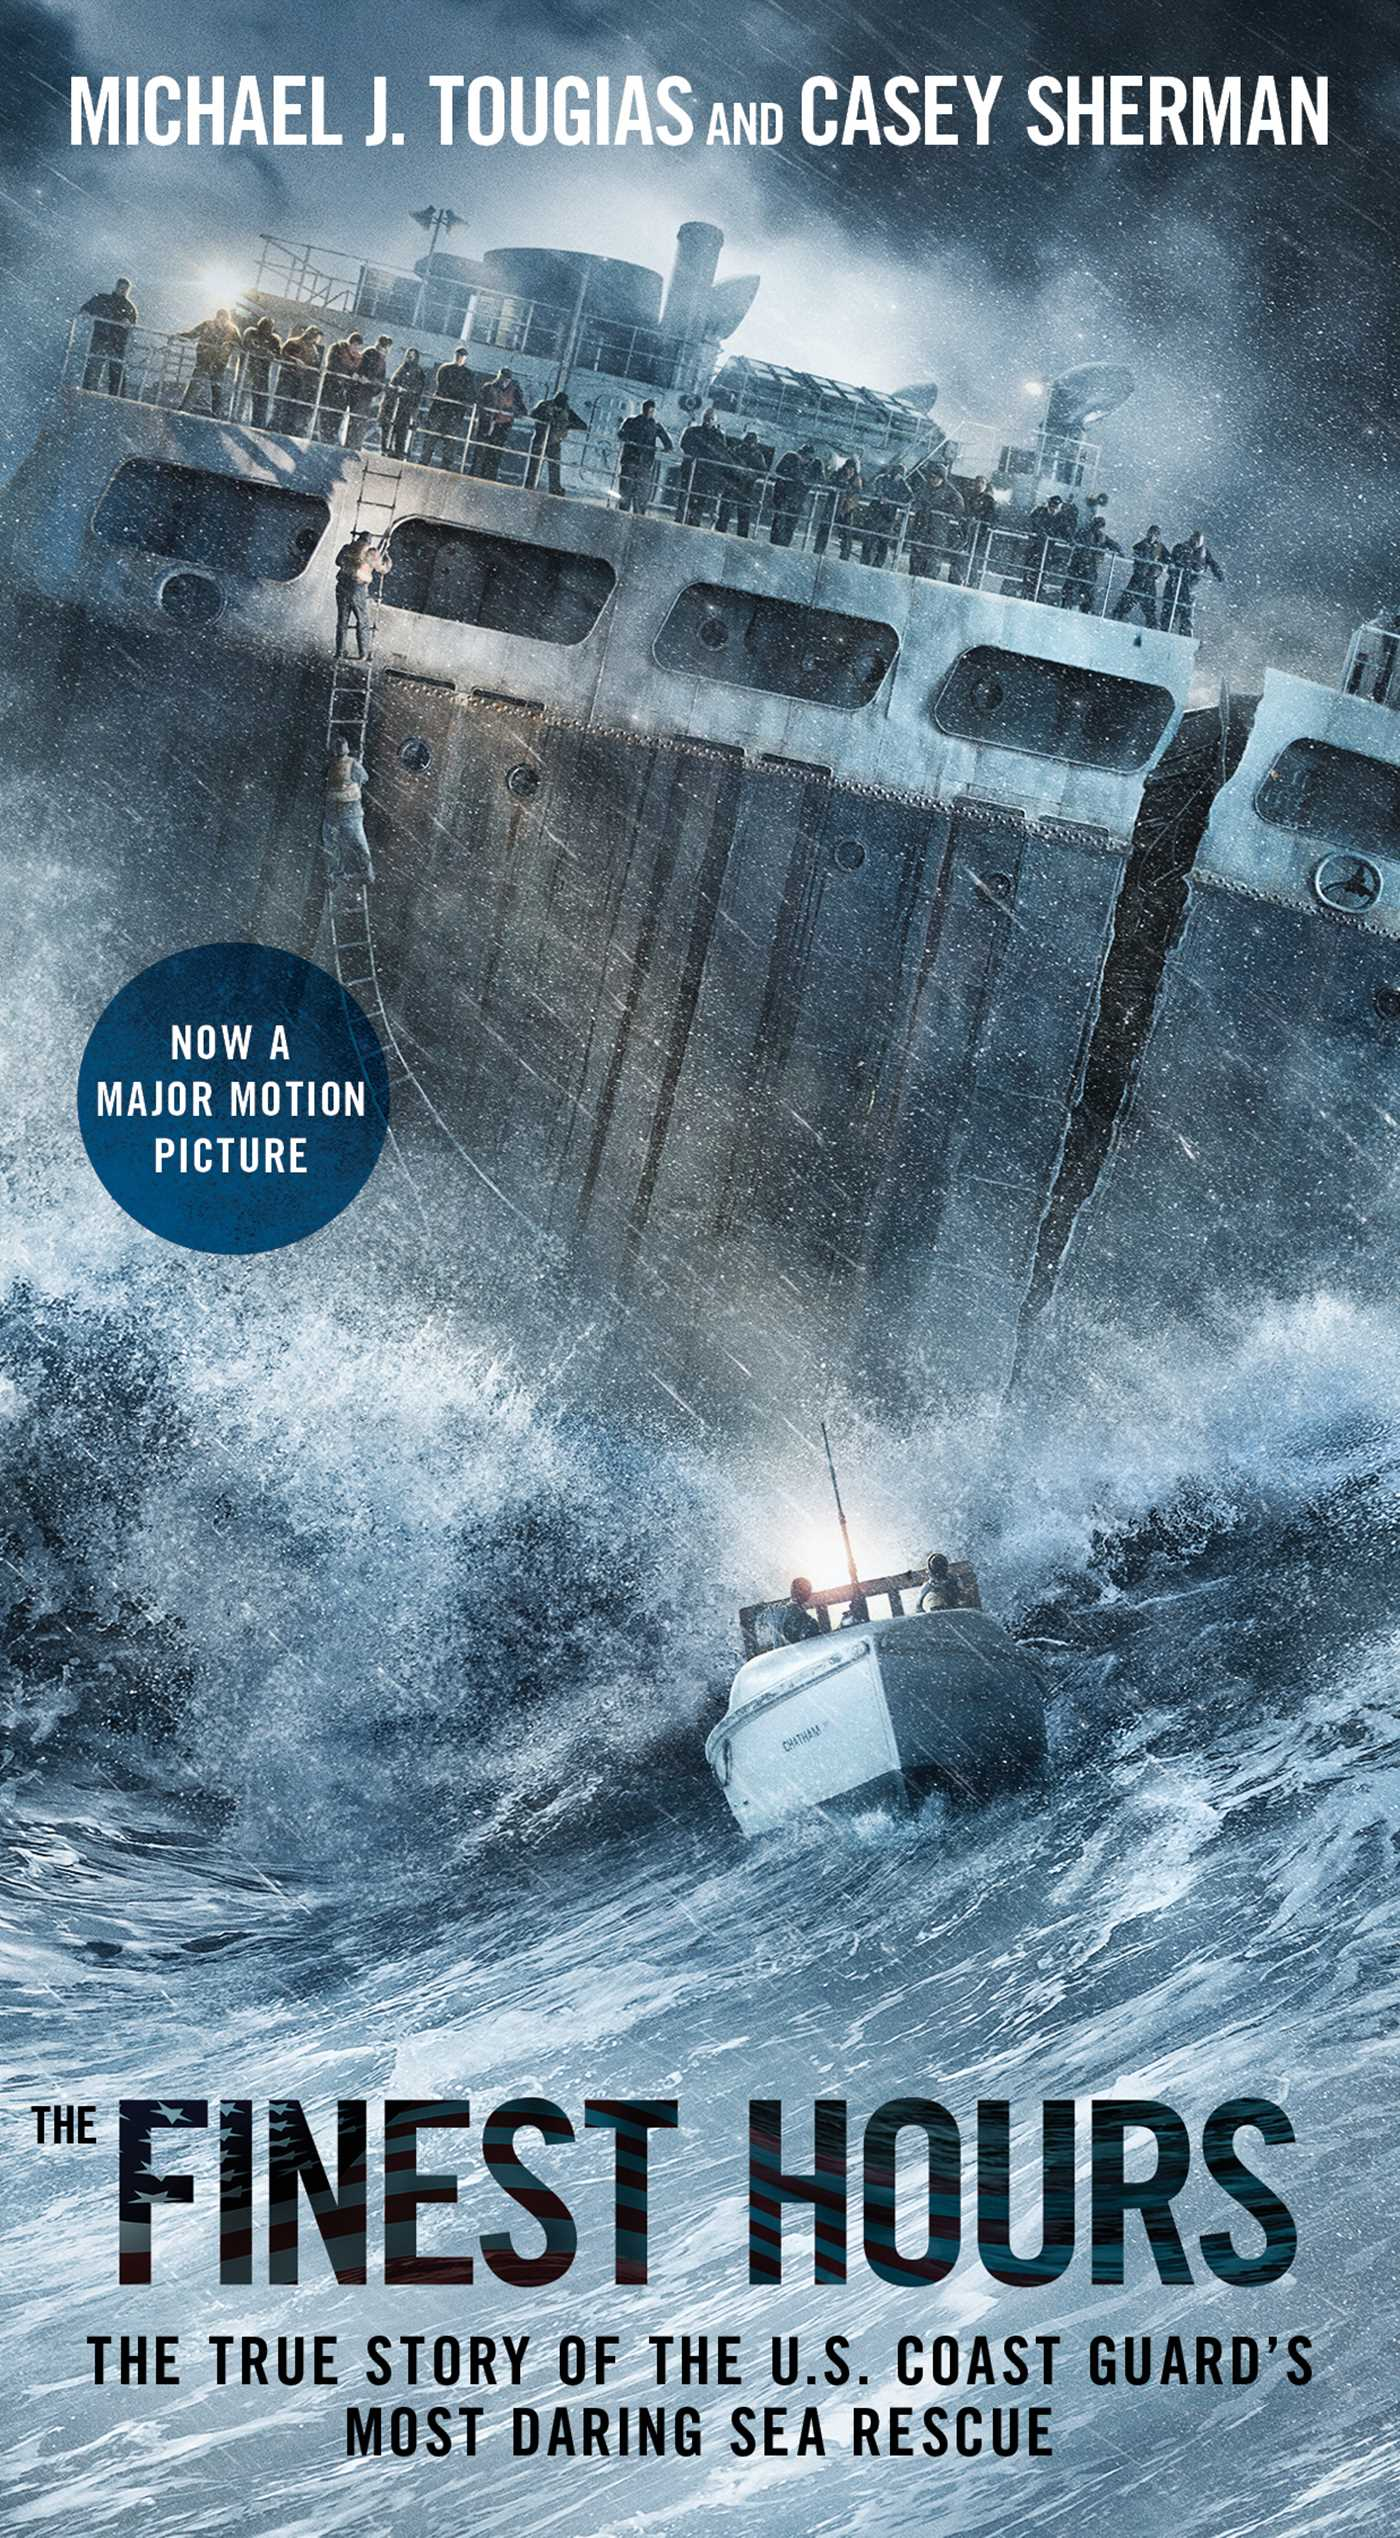 The finest hours 9781501127175 hr